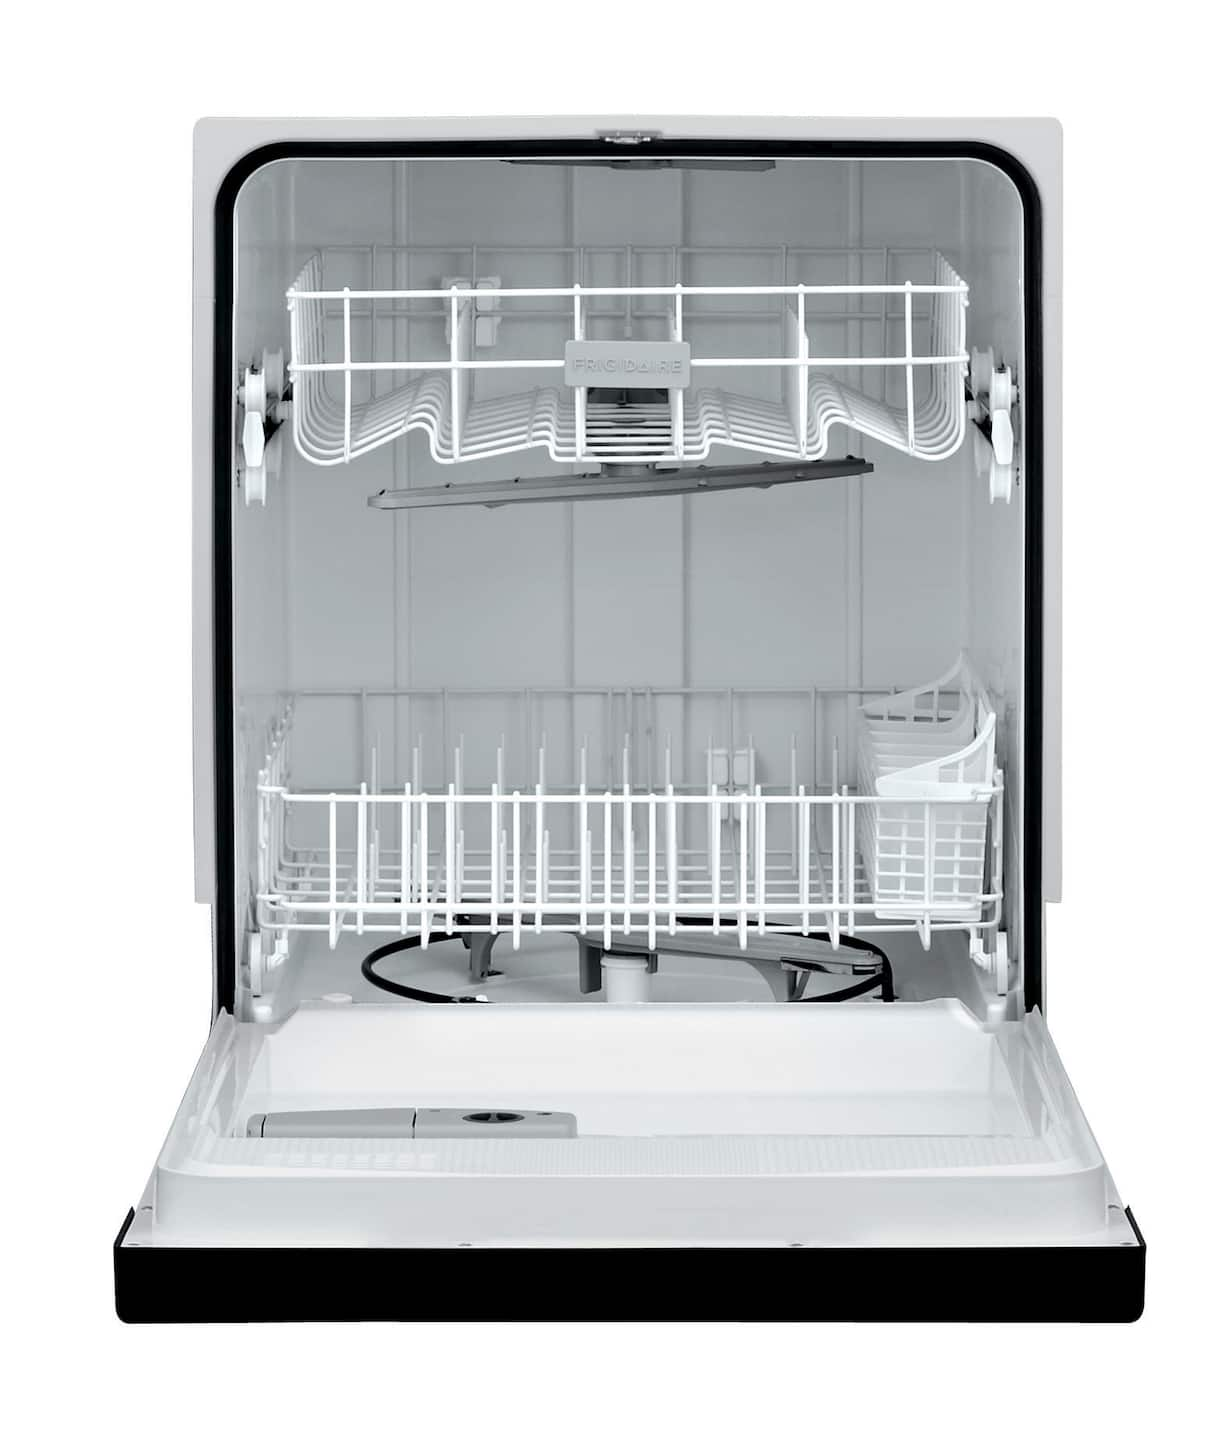 Dishwasher Review: Frigidaire 24-Inch Built-In Tall Tub Dishwasher ...